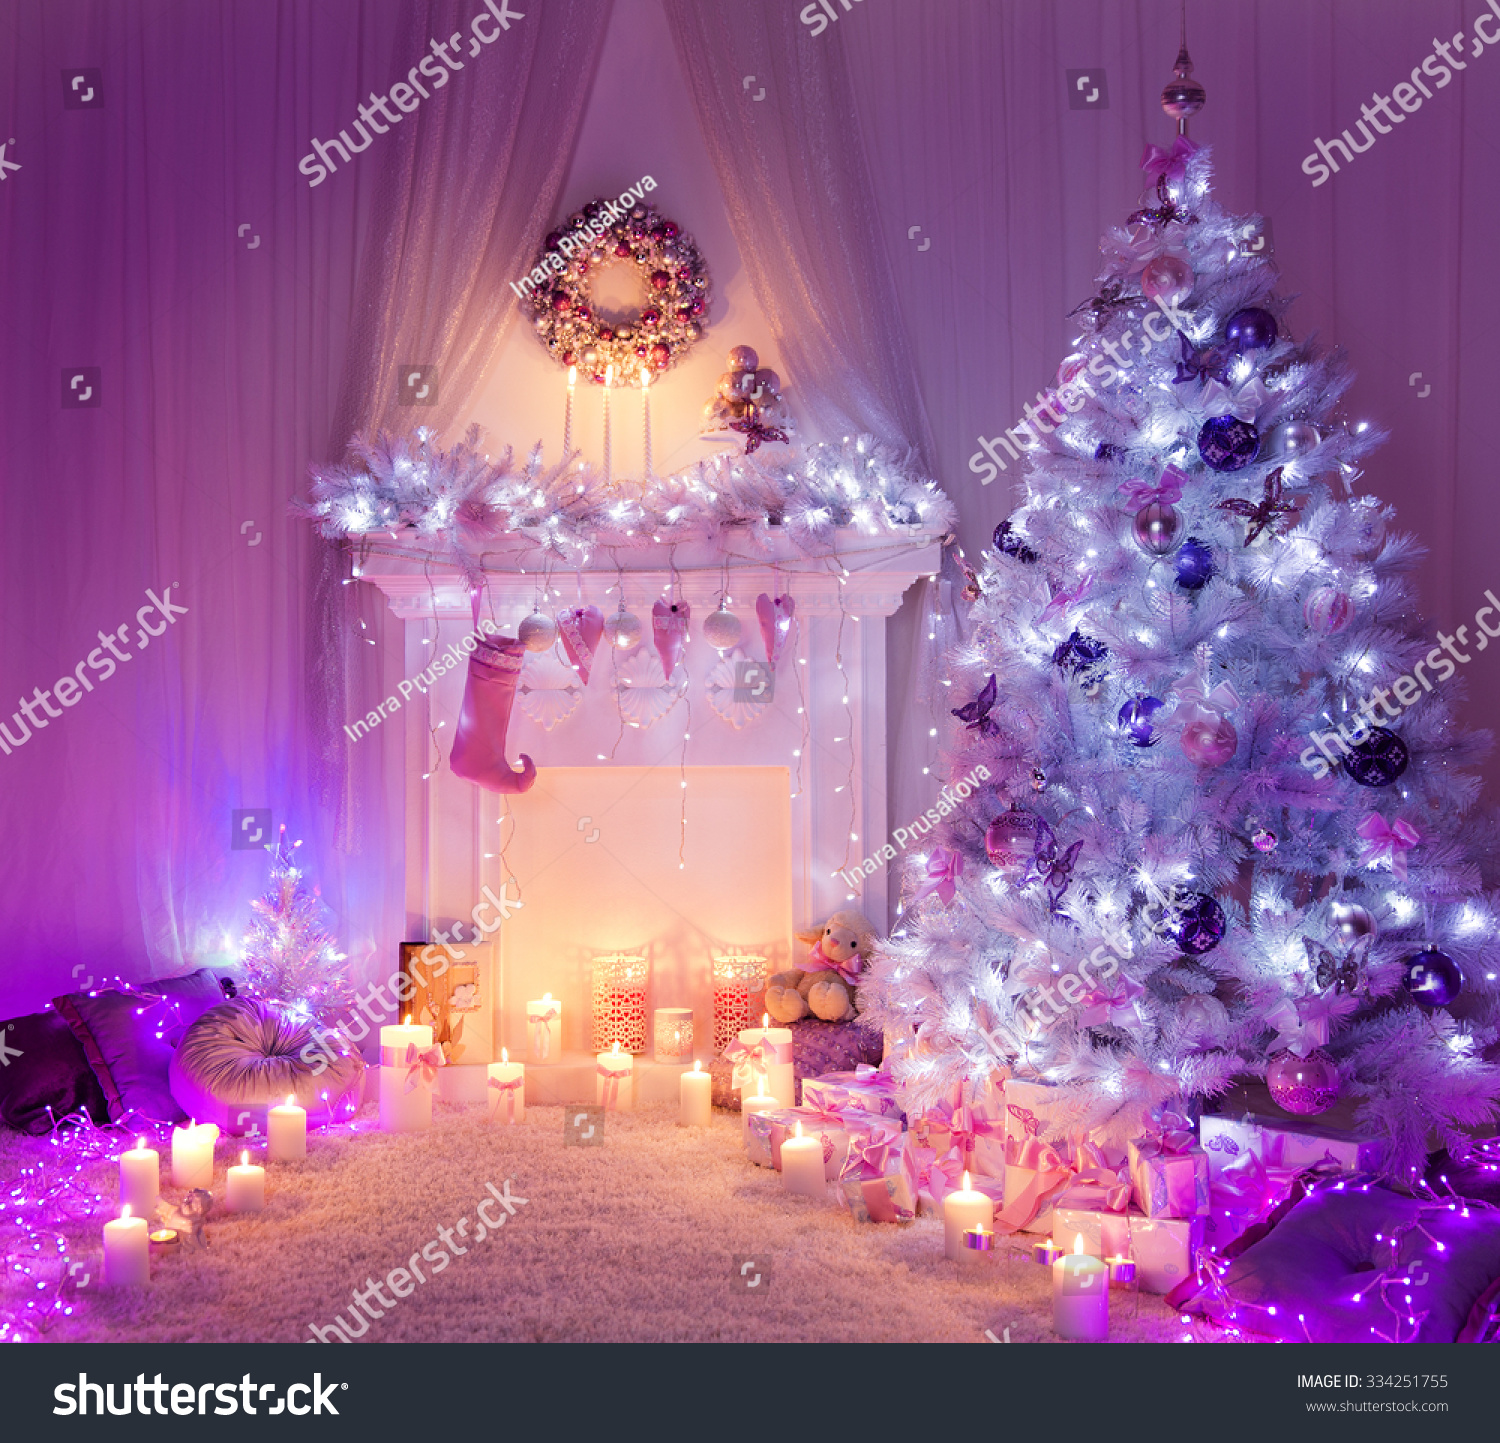 Christmas tree with presents and lights - Christmas Room Fireplace Tree Lights Xmas Home Interior Decoration Hanging Sock And Presents